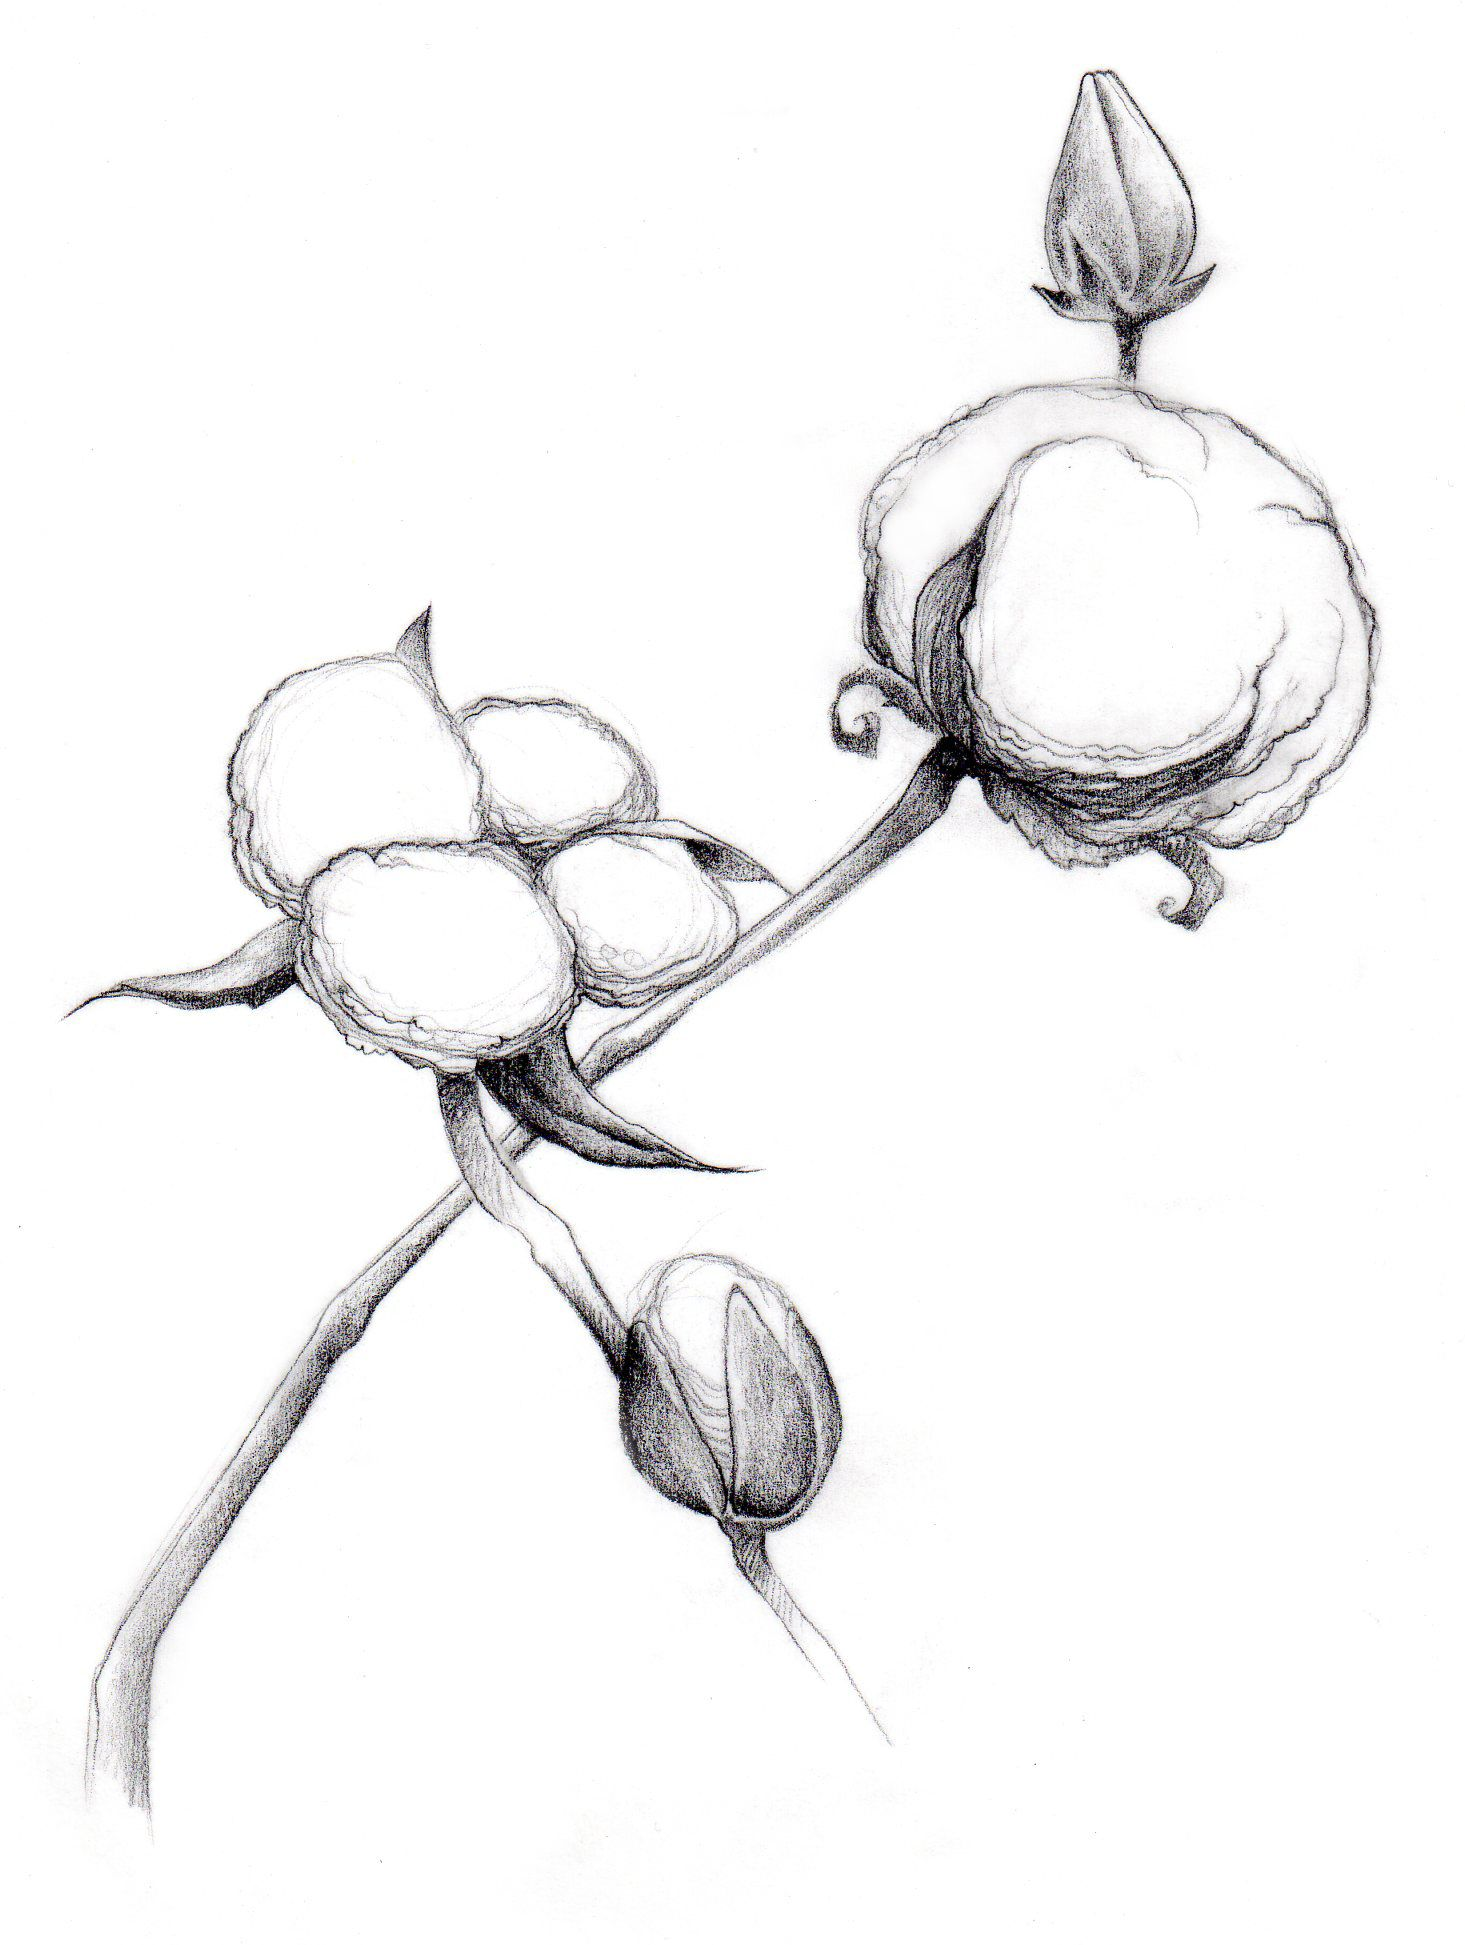 Cotton clipart sketch. Prickly plant drawings free